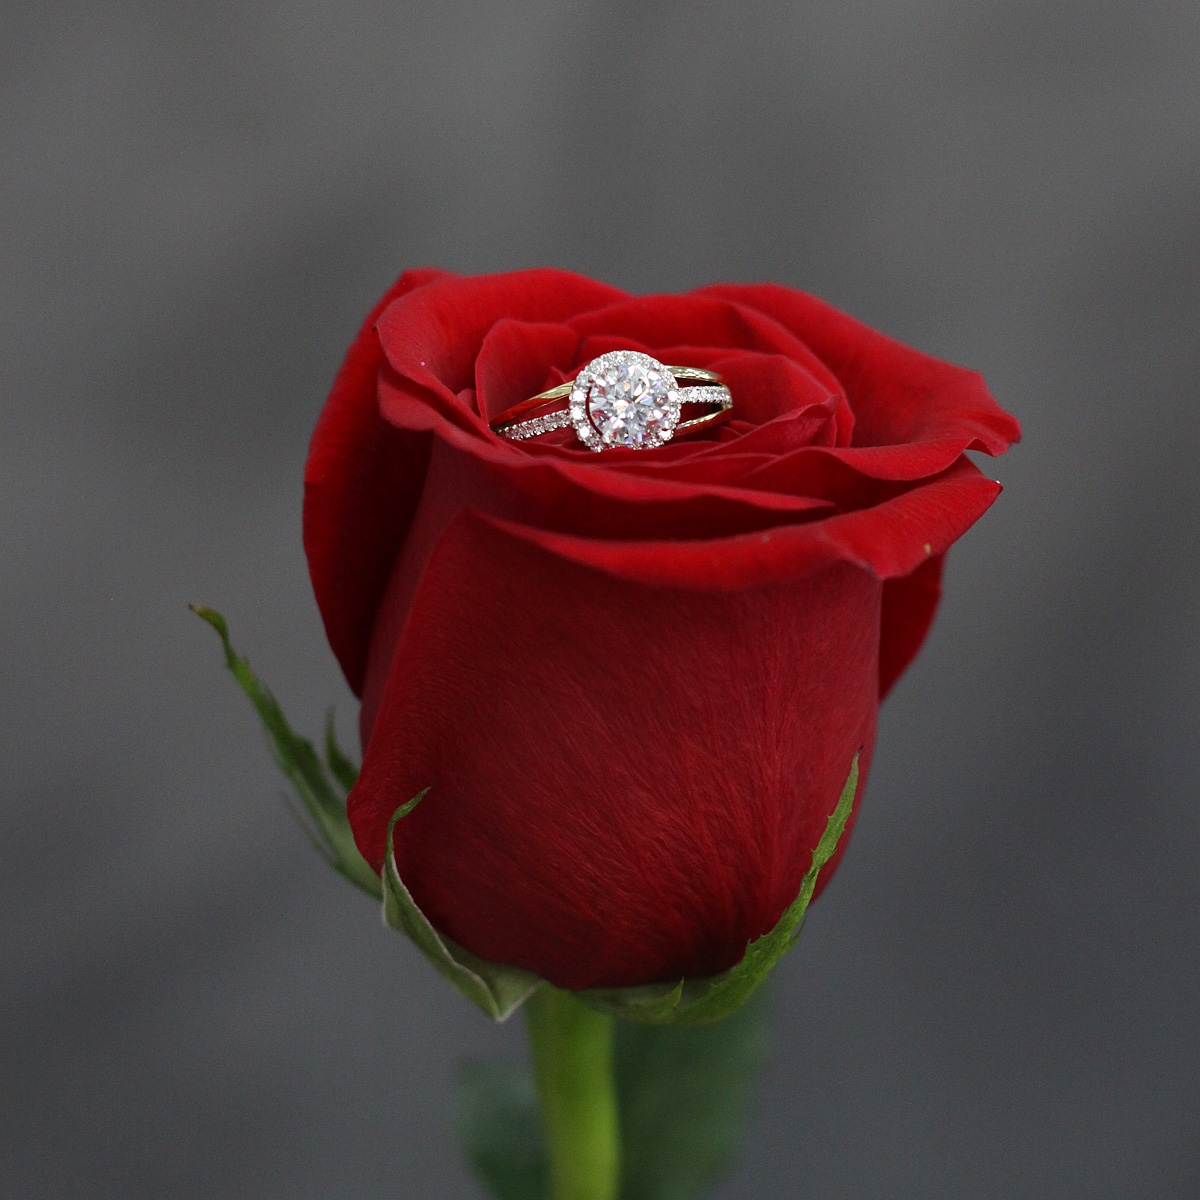 Bride & Groom - Shop engagement rings, semi mounts & wedding bands for bride and groom.